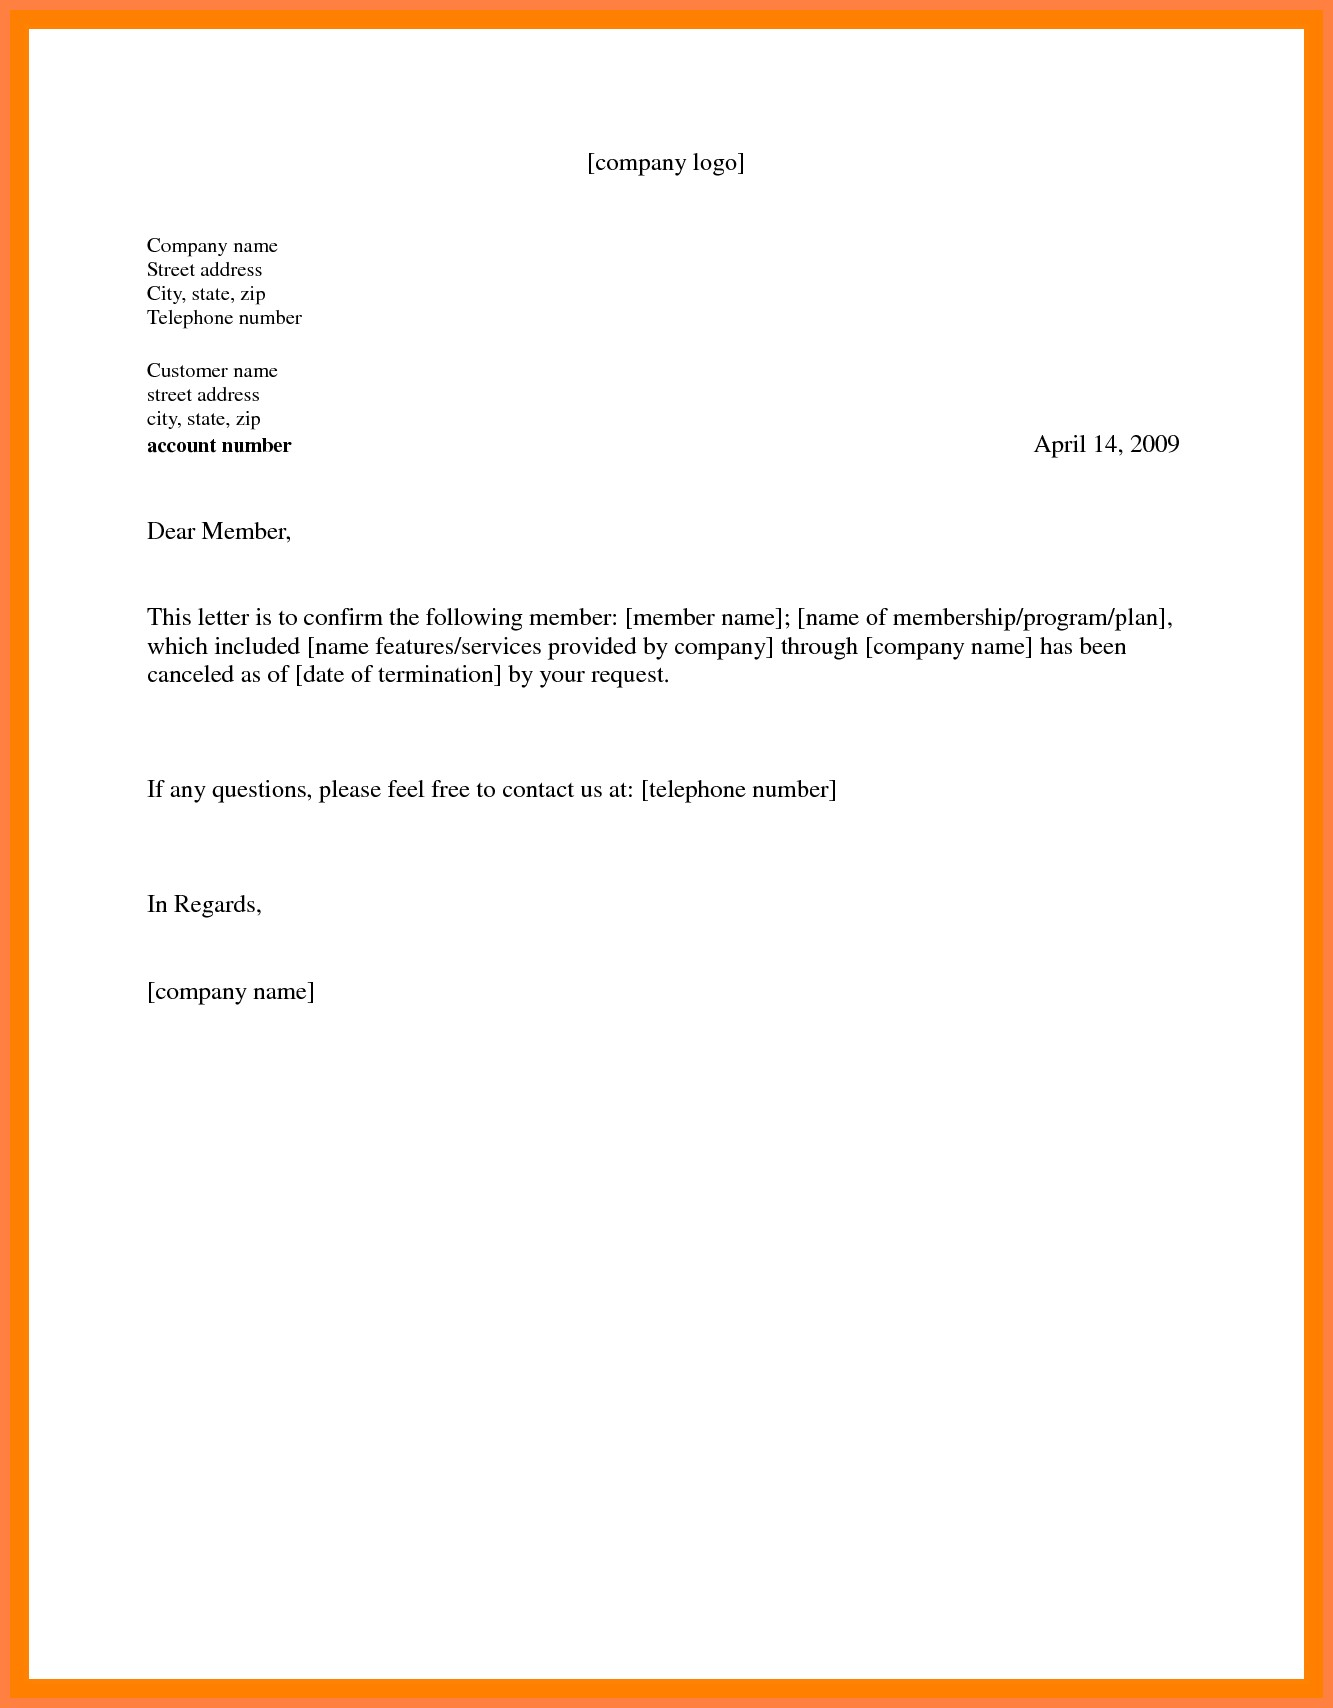 Gym Membership Cancellation Letter Template Free - Gym Membership Cancellation Letter Sample Best 9 Cancel Gym